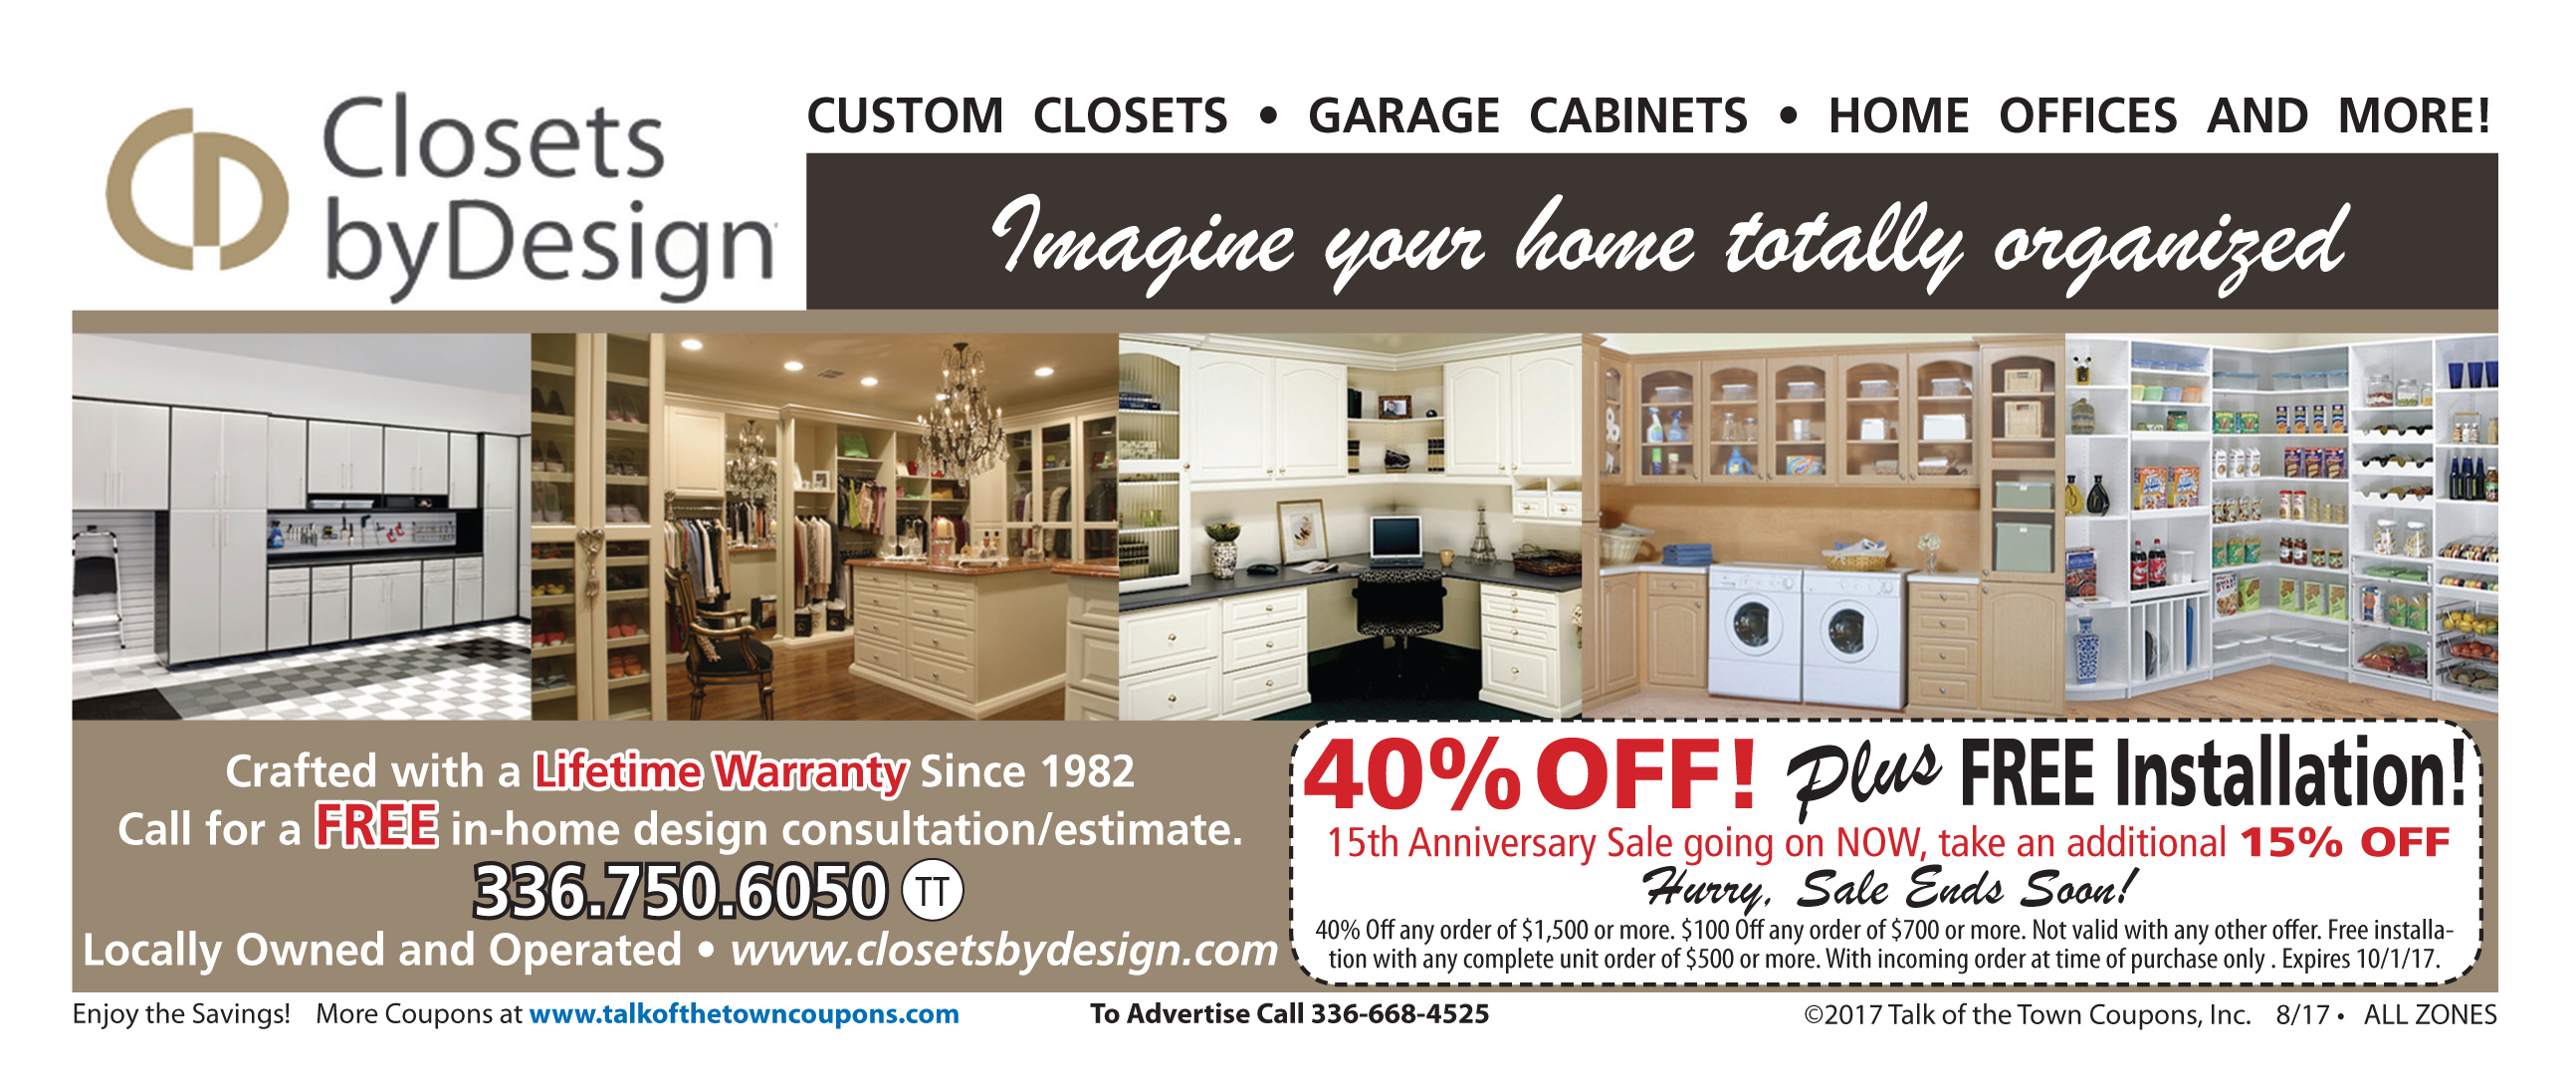 Charmant Fullsize Of Closet By Design Large Of Closet By Design ...